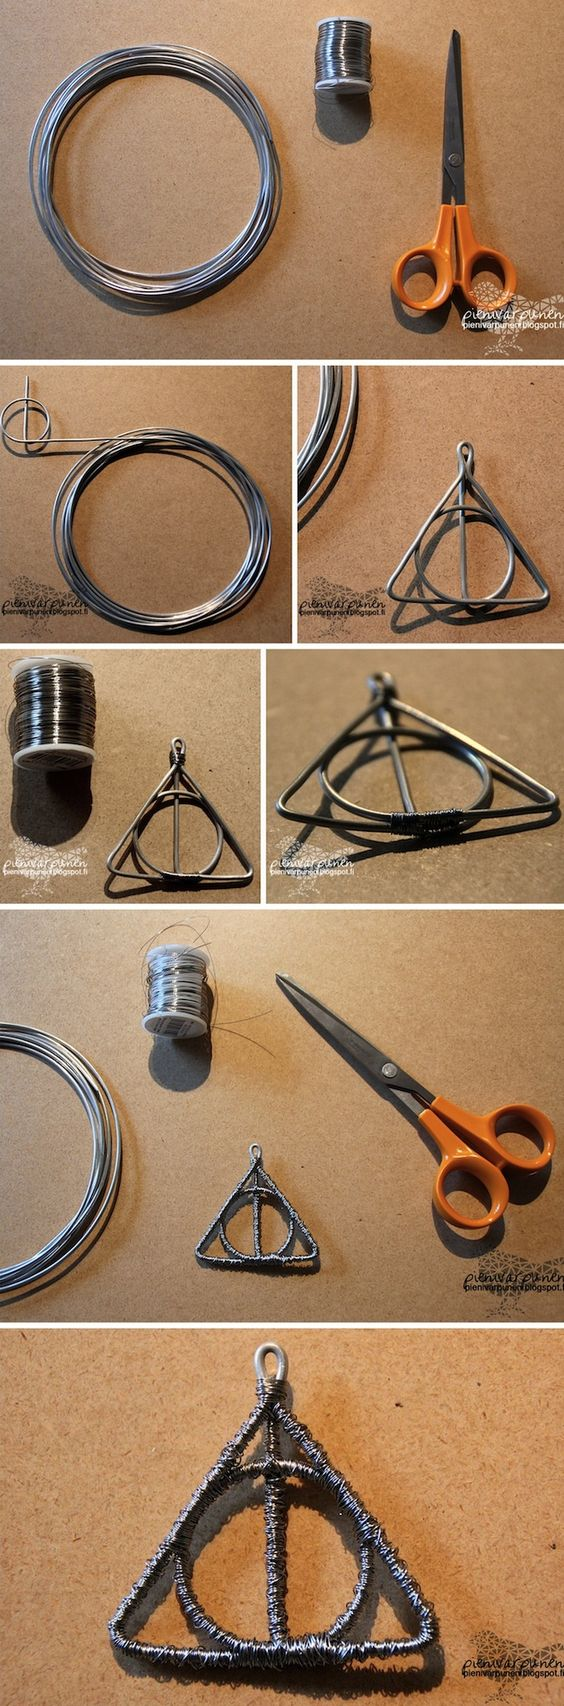 How To Make Harry Potter Stuff For Your Room